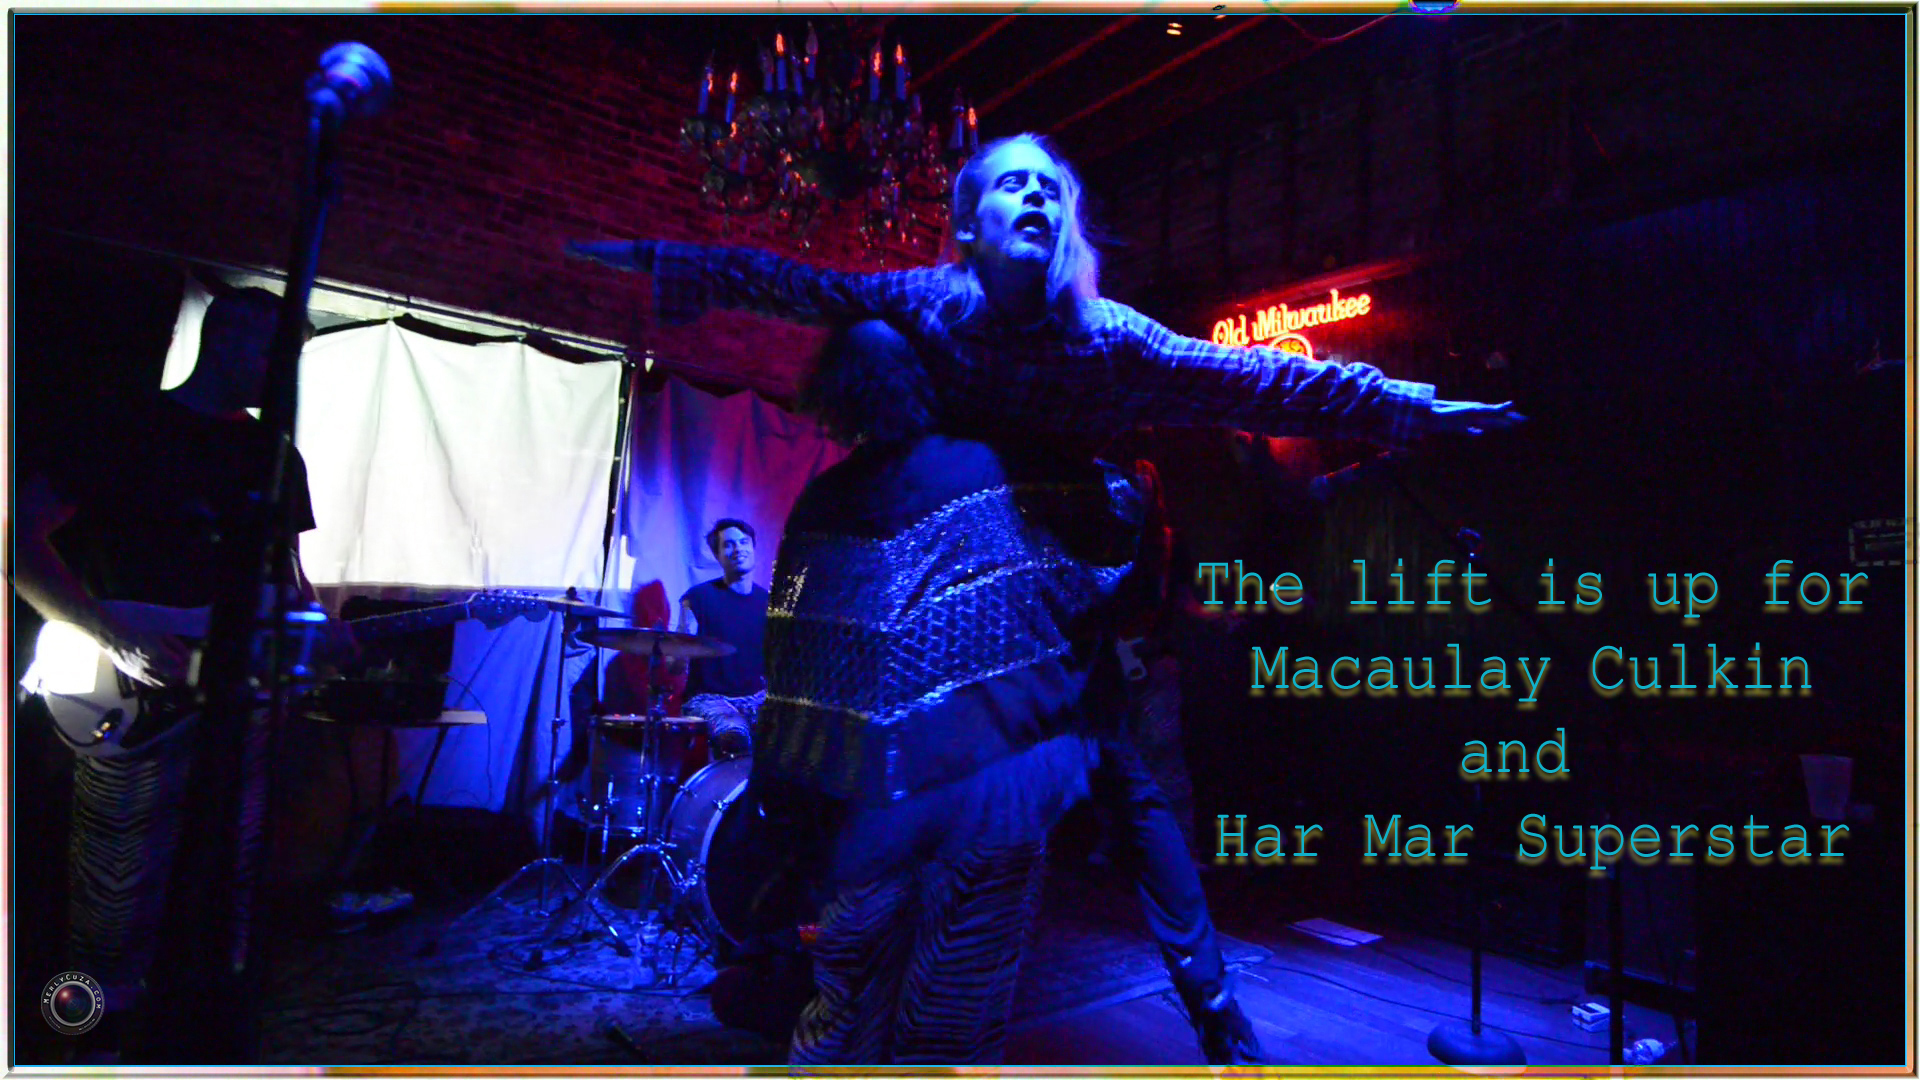 Har Mar Superstar Lifts Macaulay Culkin